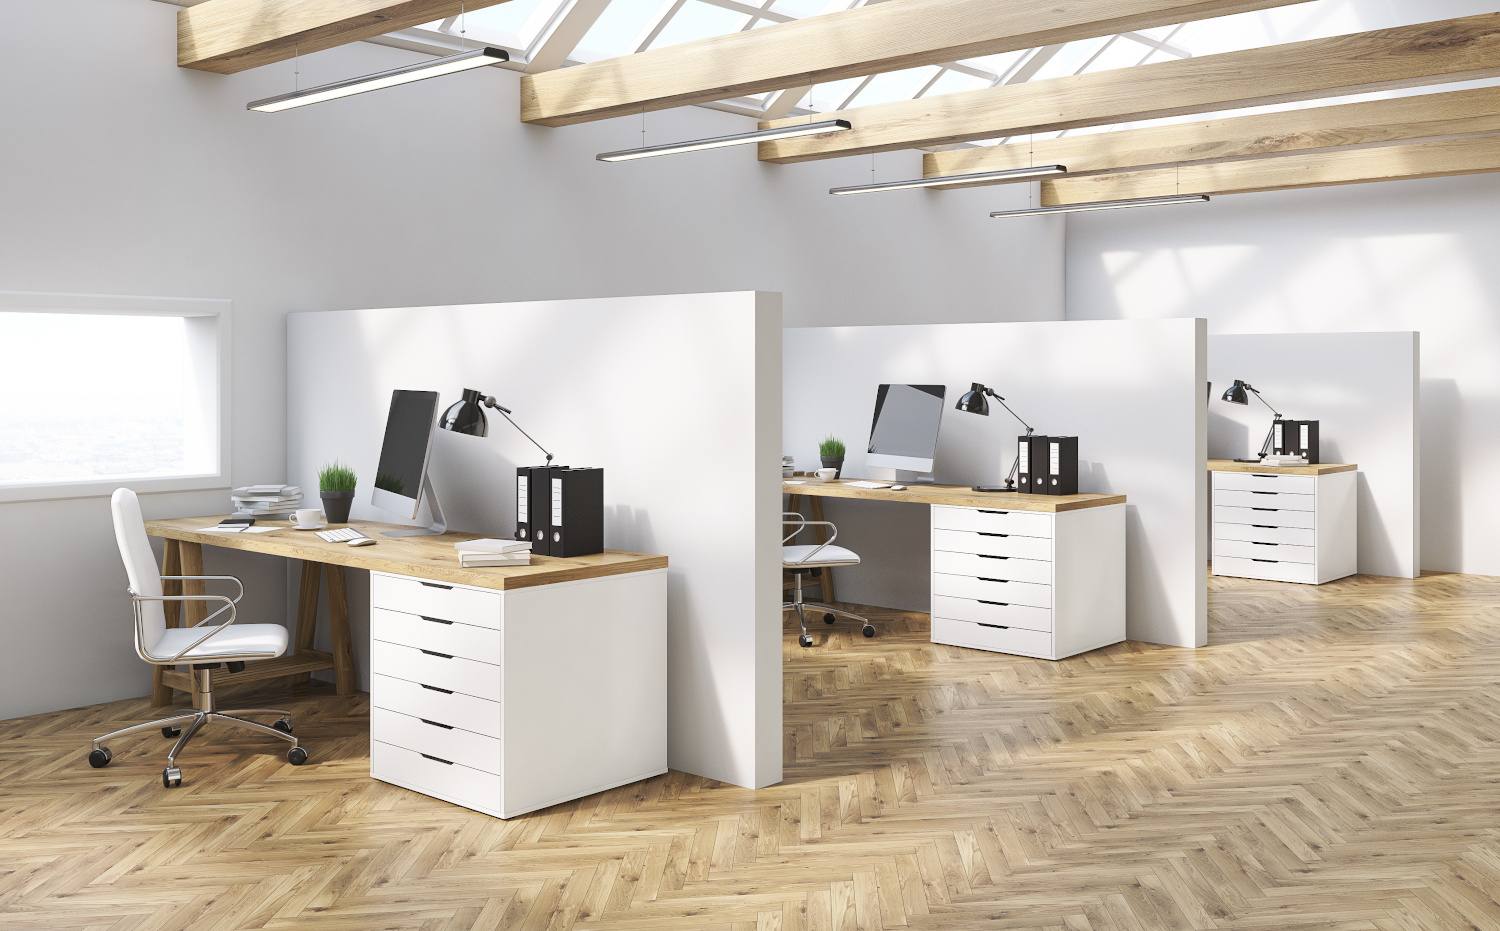 Commercial furniture, bathroom, display and signage, dividing panels, office furniture, home furniture, shelves, hanging panels, doors, murals, architectural, Panels, light, eco-responsible, honeycomb cardboard, composite sandwich, rigid panels, panel, panolite, panolite element, panolite plus, tekboard, panel without reinforcement, composite, acoustic, acoustic panel, Acoustic panels, Sound insulation panel, Wall panels, Feltkutur panels, lightweight, commercial, institutional, residential, furniture